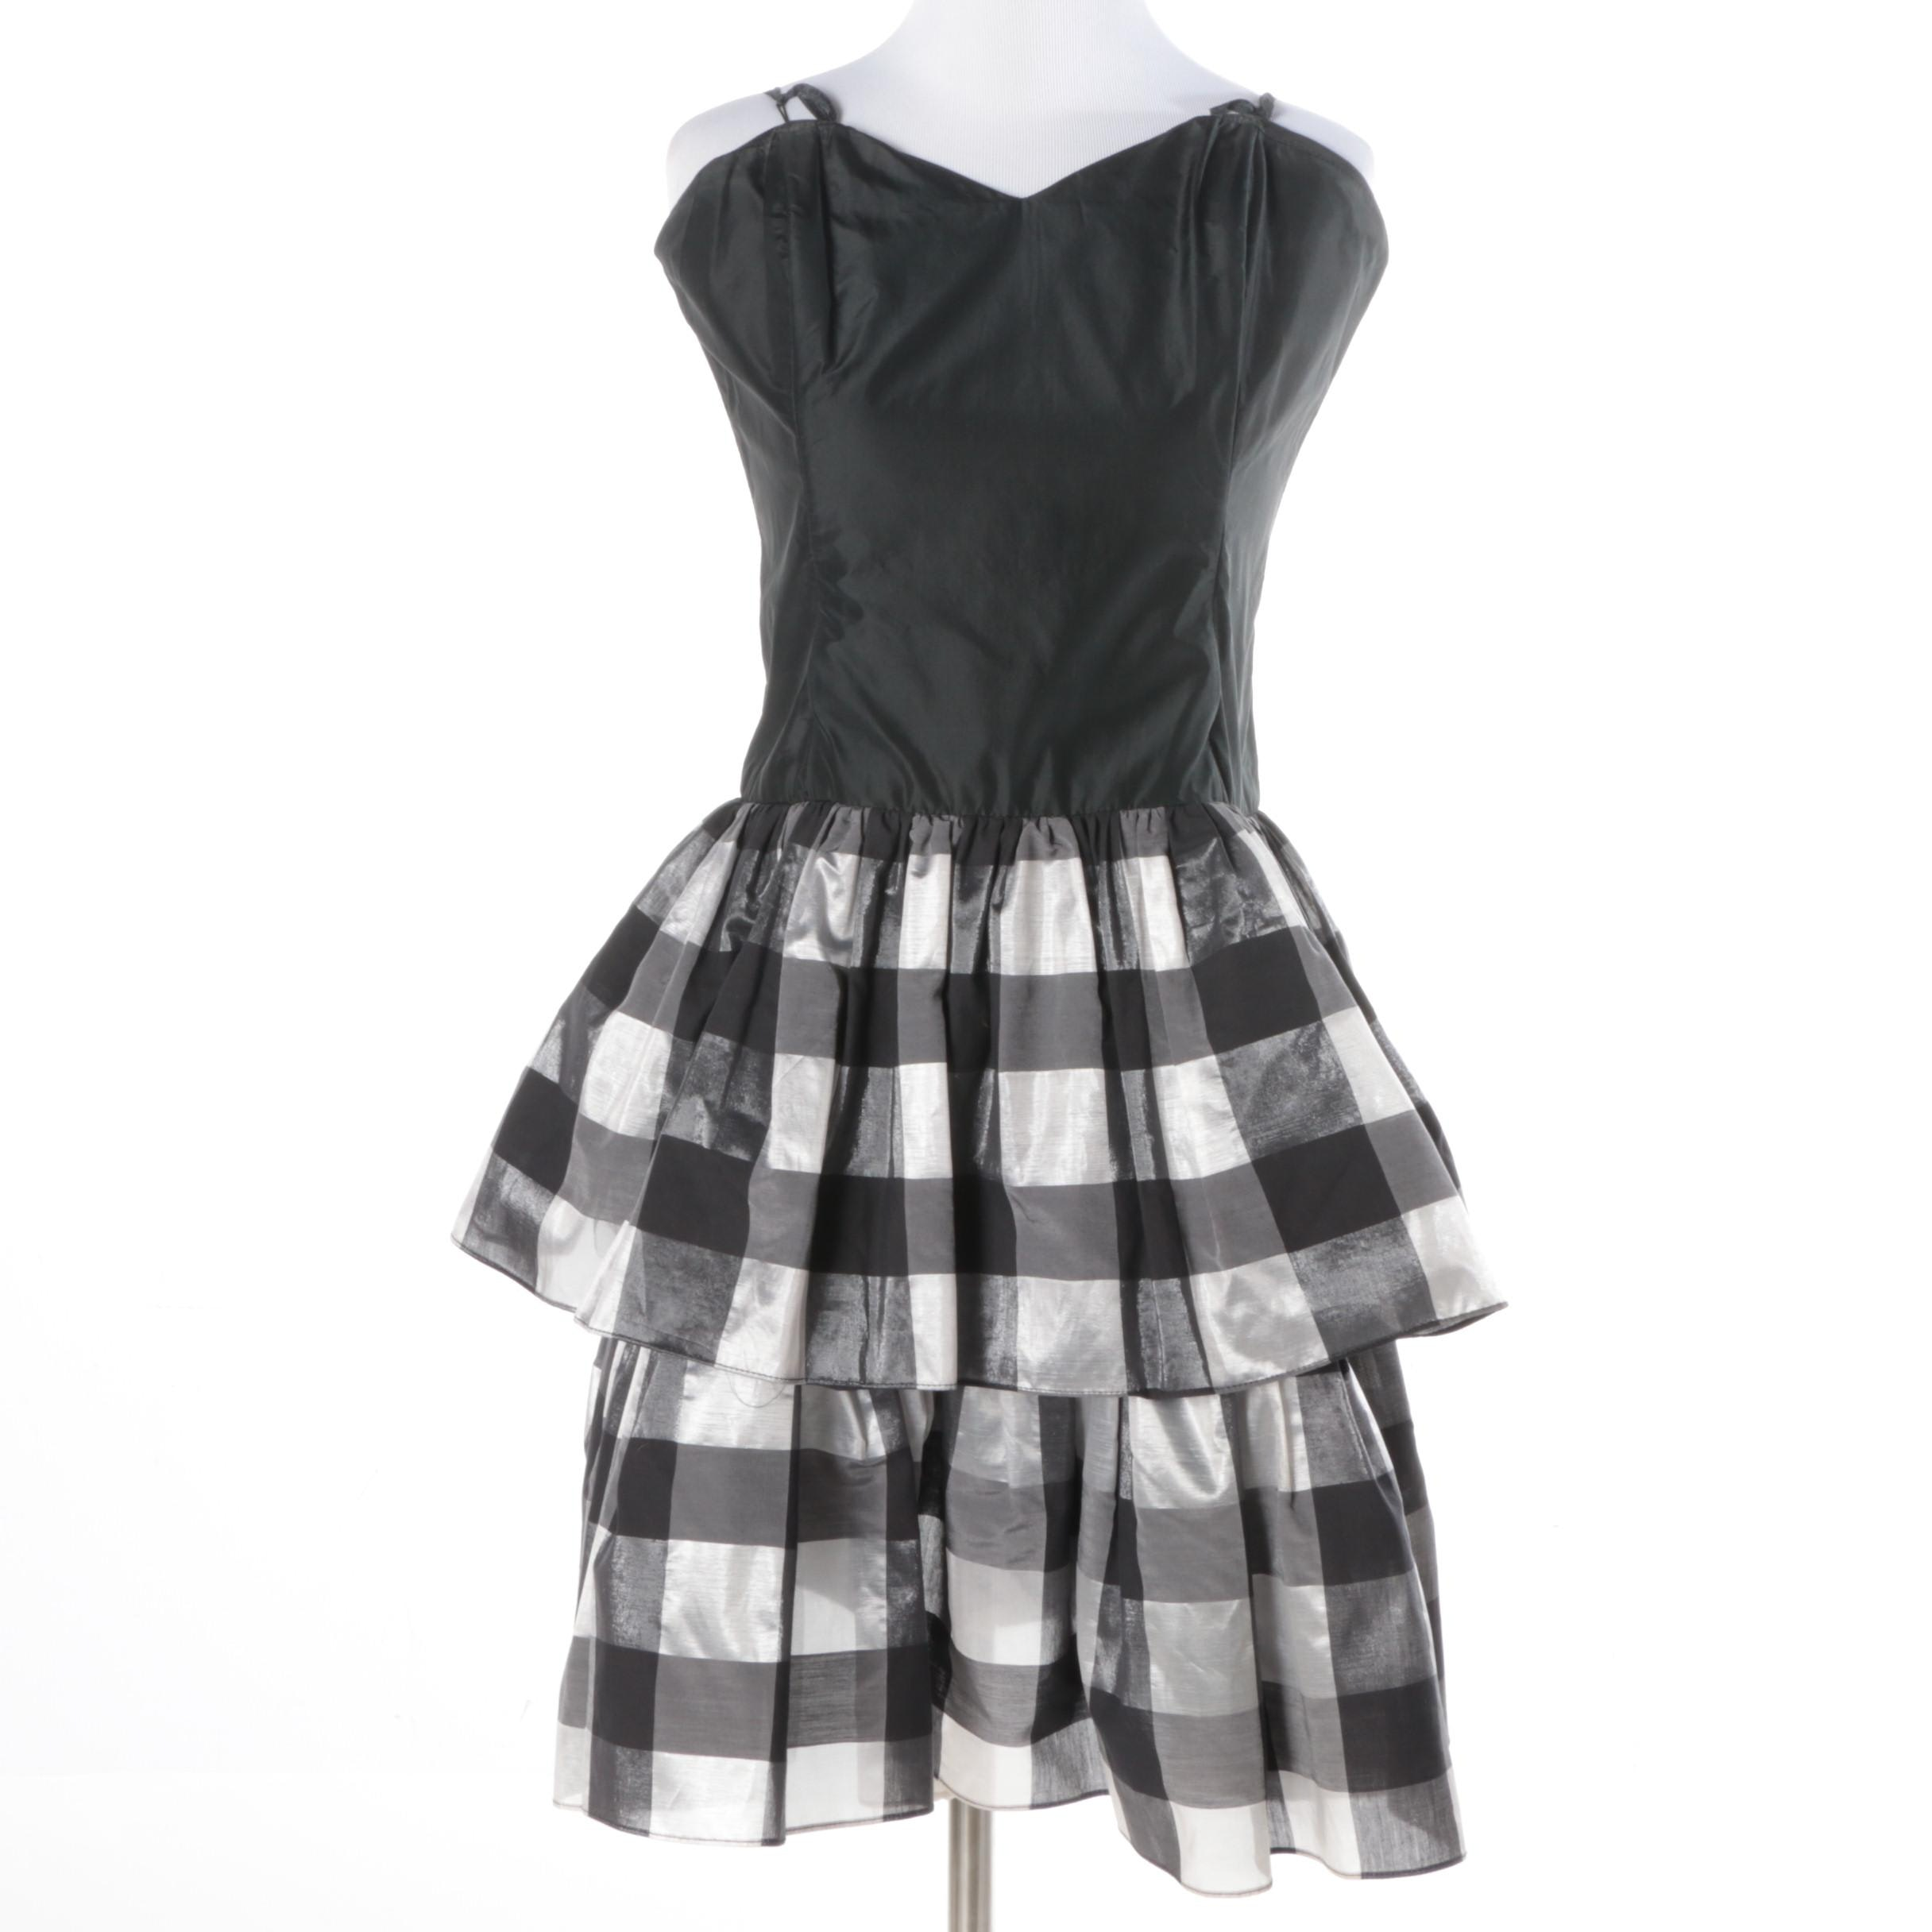 Black and Silver Plaid Sleeveless Dress